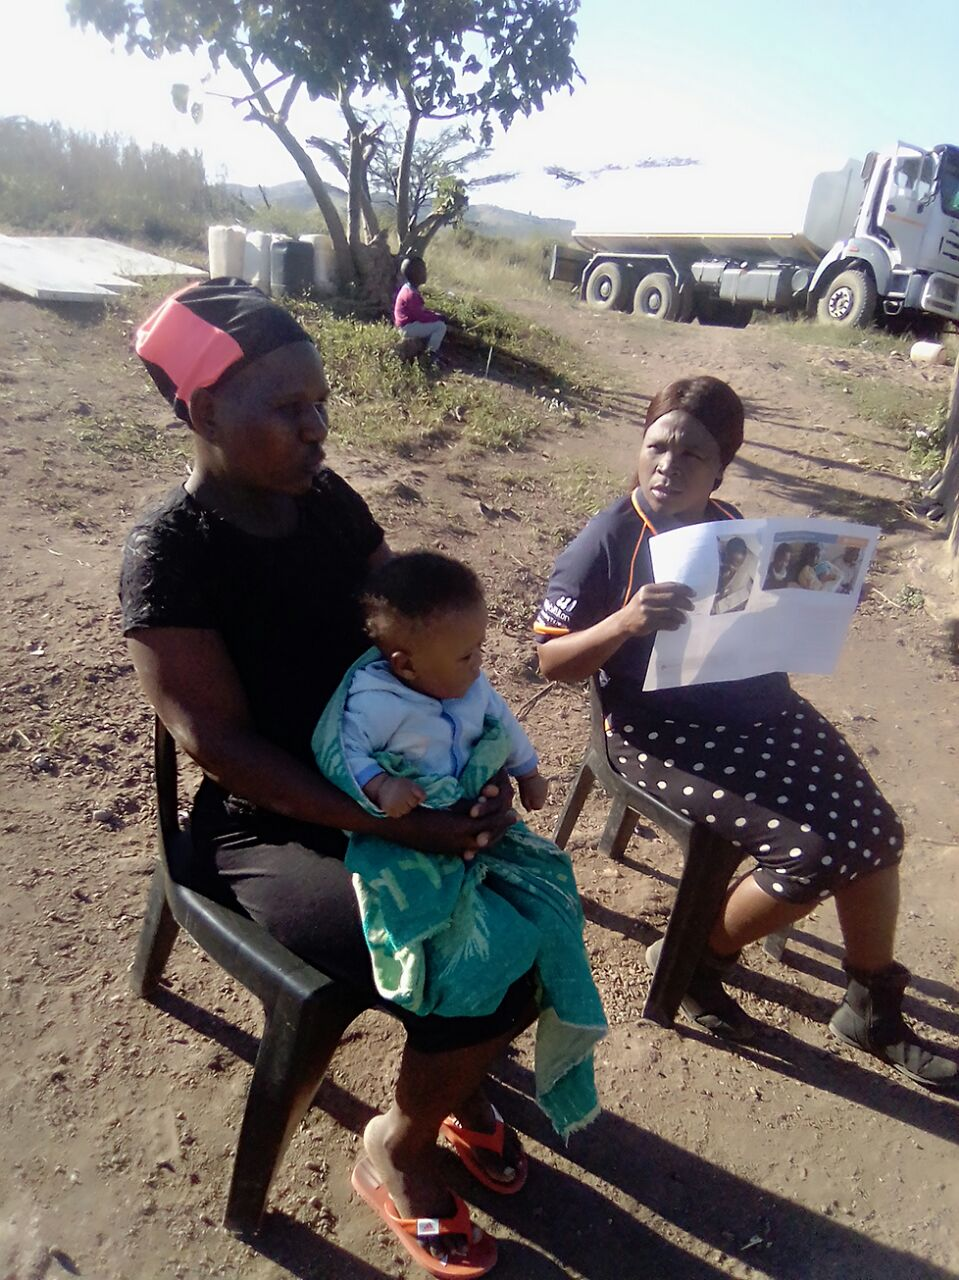 A woman in rural South Africa receiving maternity healthcare funded by Ruth and Dave after they had their own baby